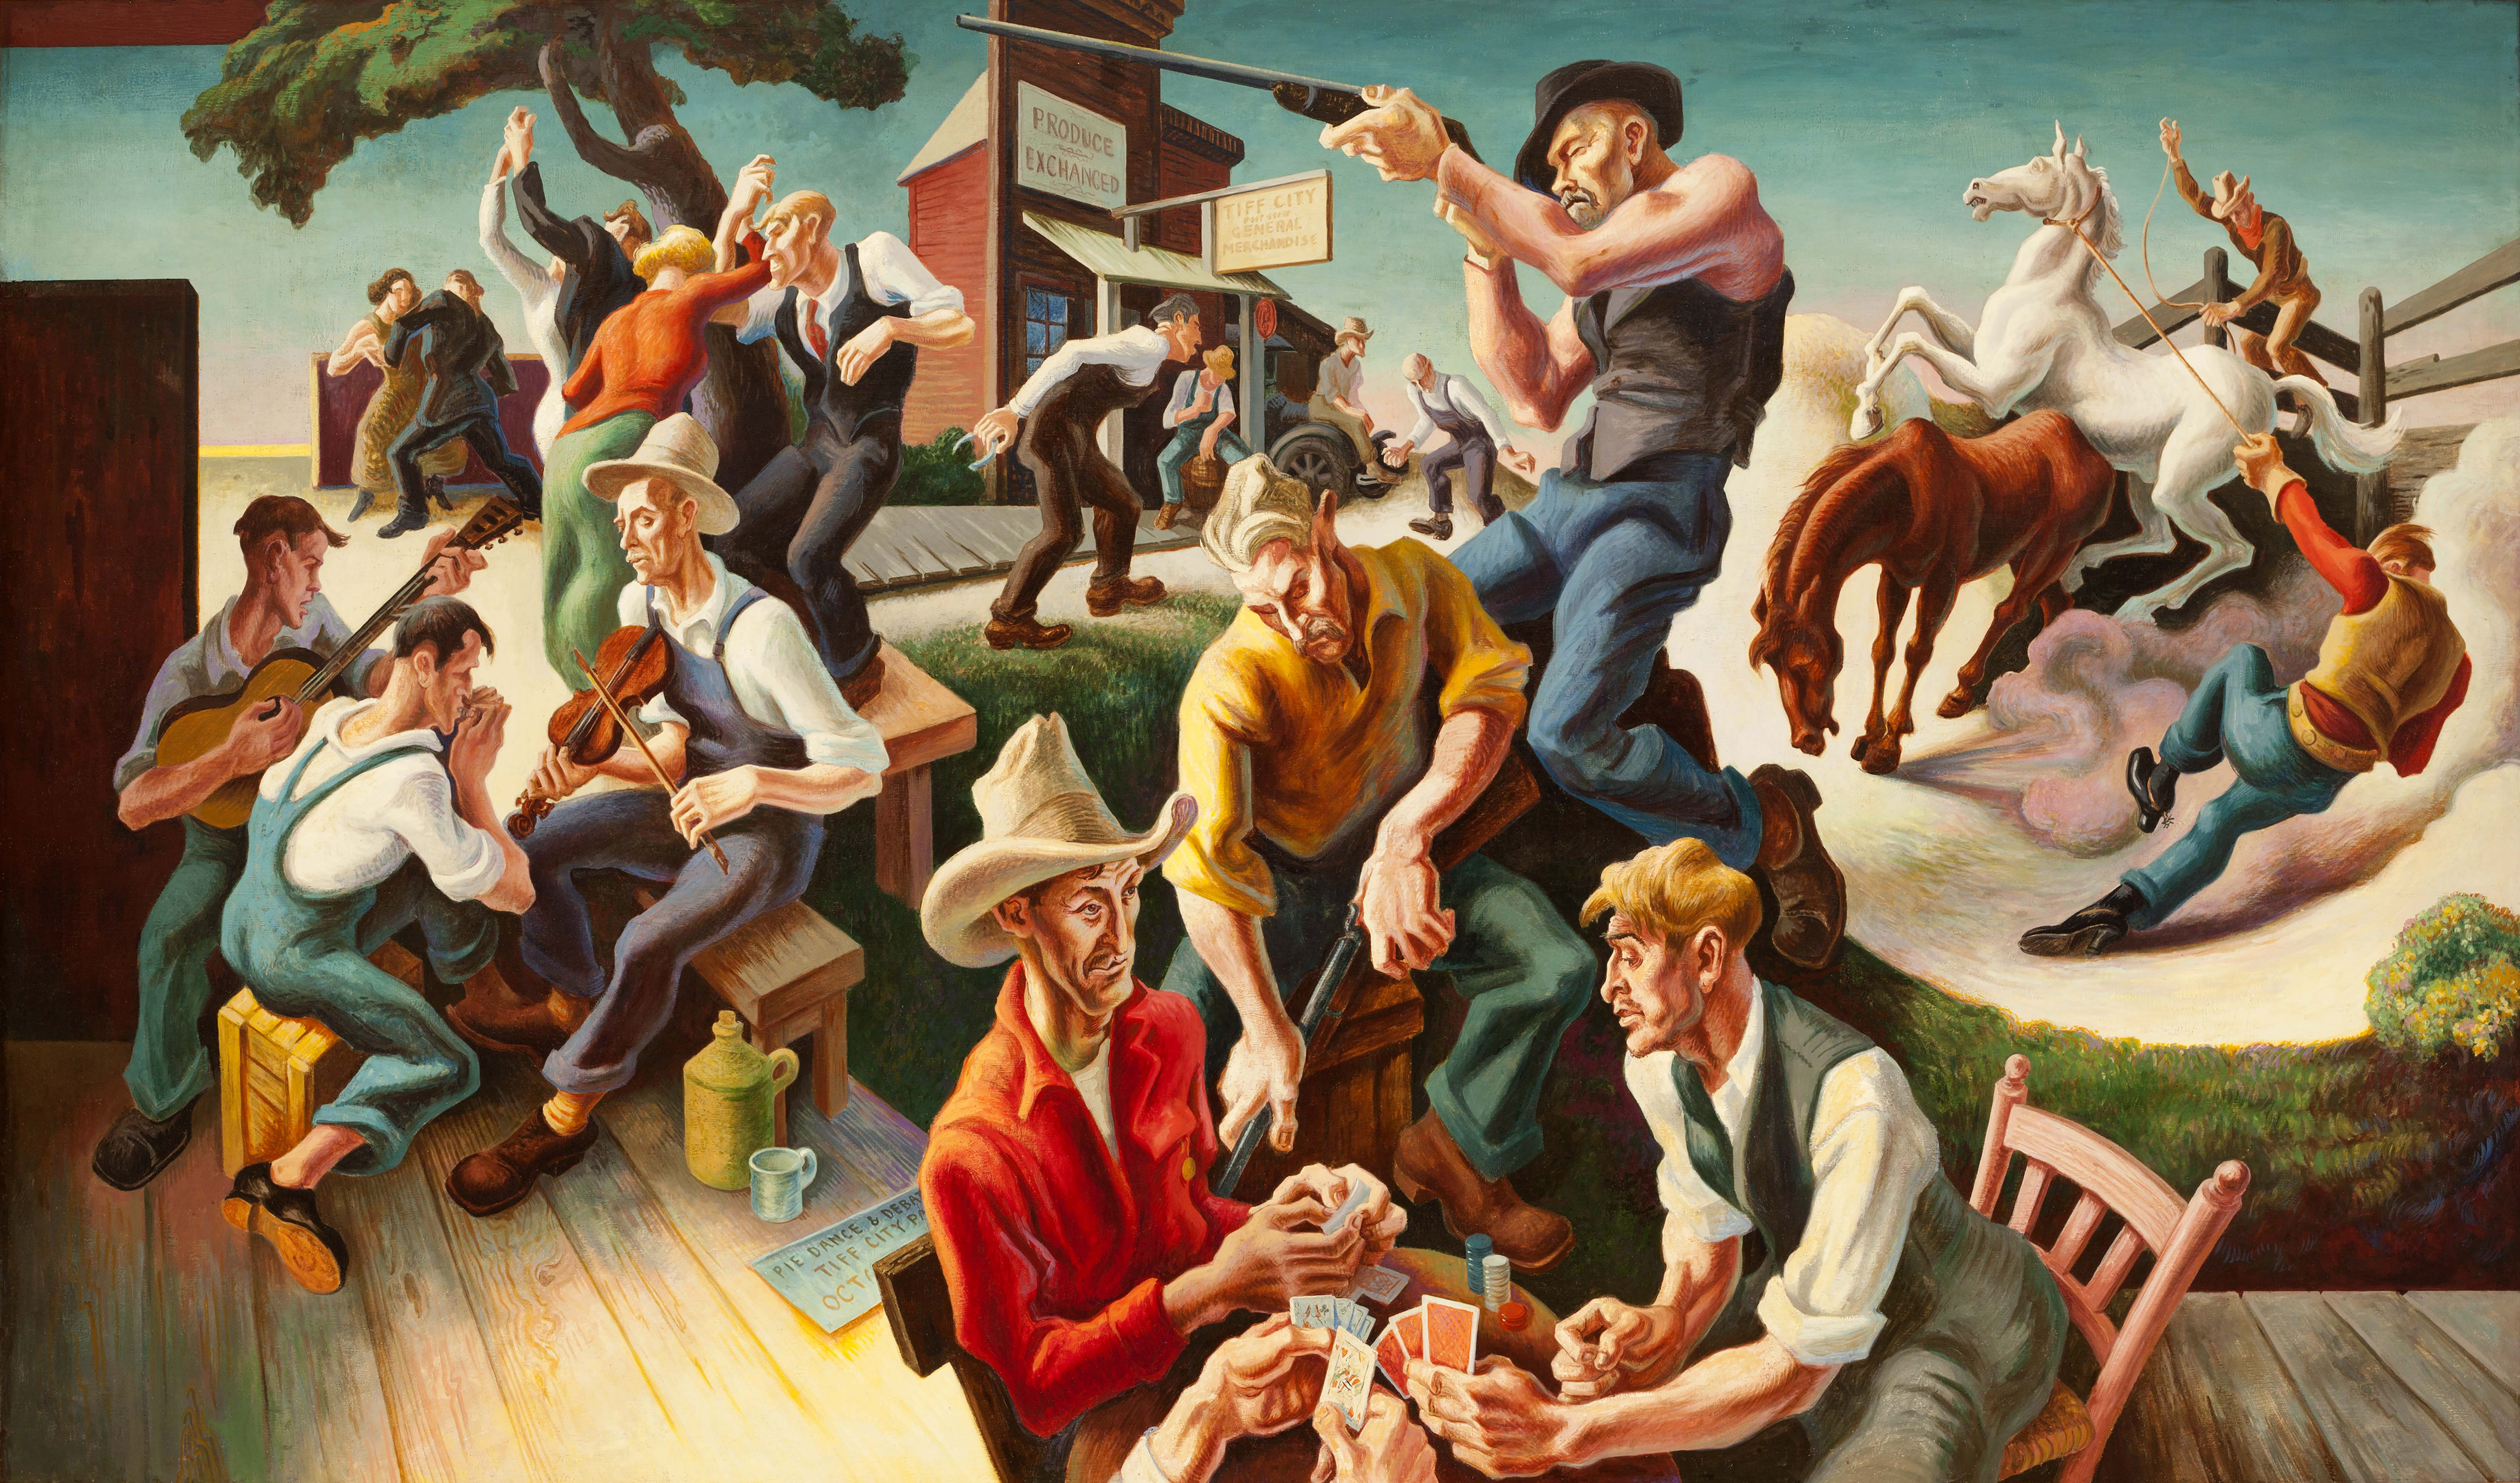 Thomas Hart Benton, <i>The Arts of Life in America: Arts of the West, </i> 1932, Egg tempera and oil glaze on linen, 93 3/4 x 159 1/2 in., Harriet Russell Stanley Fund